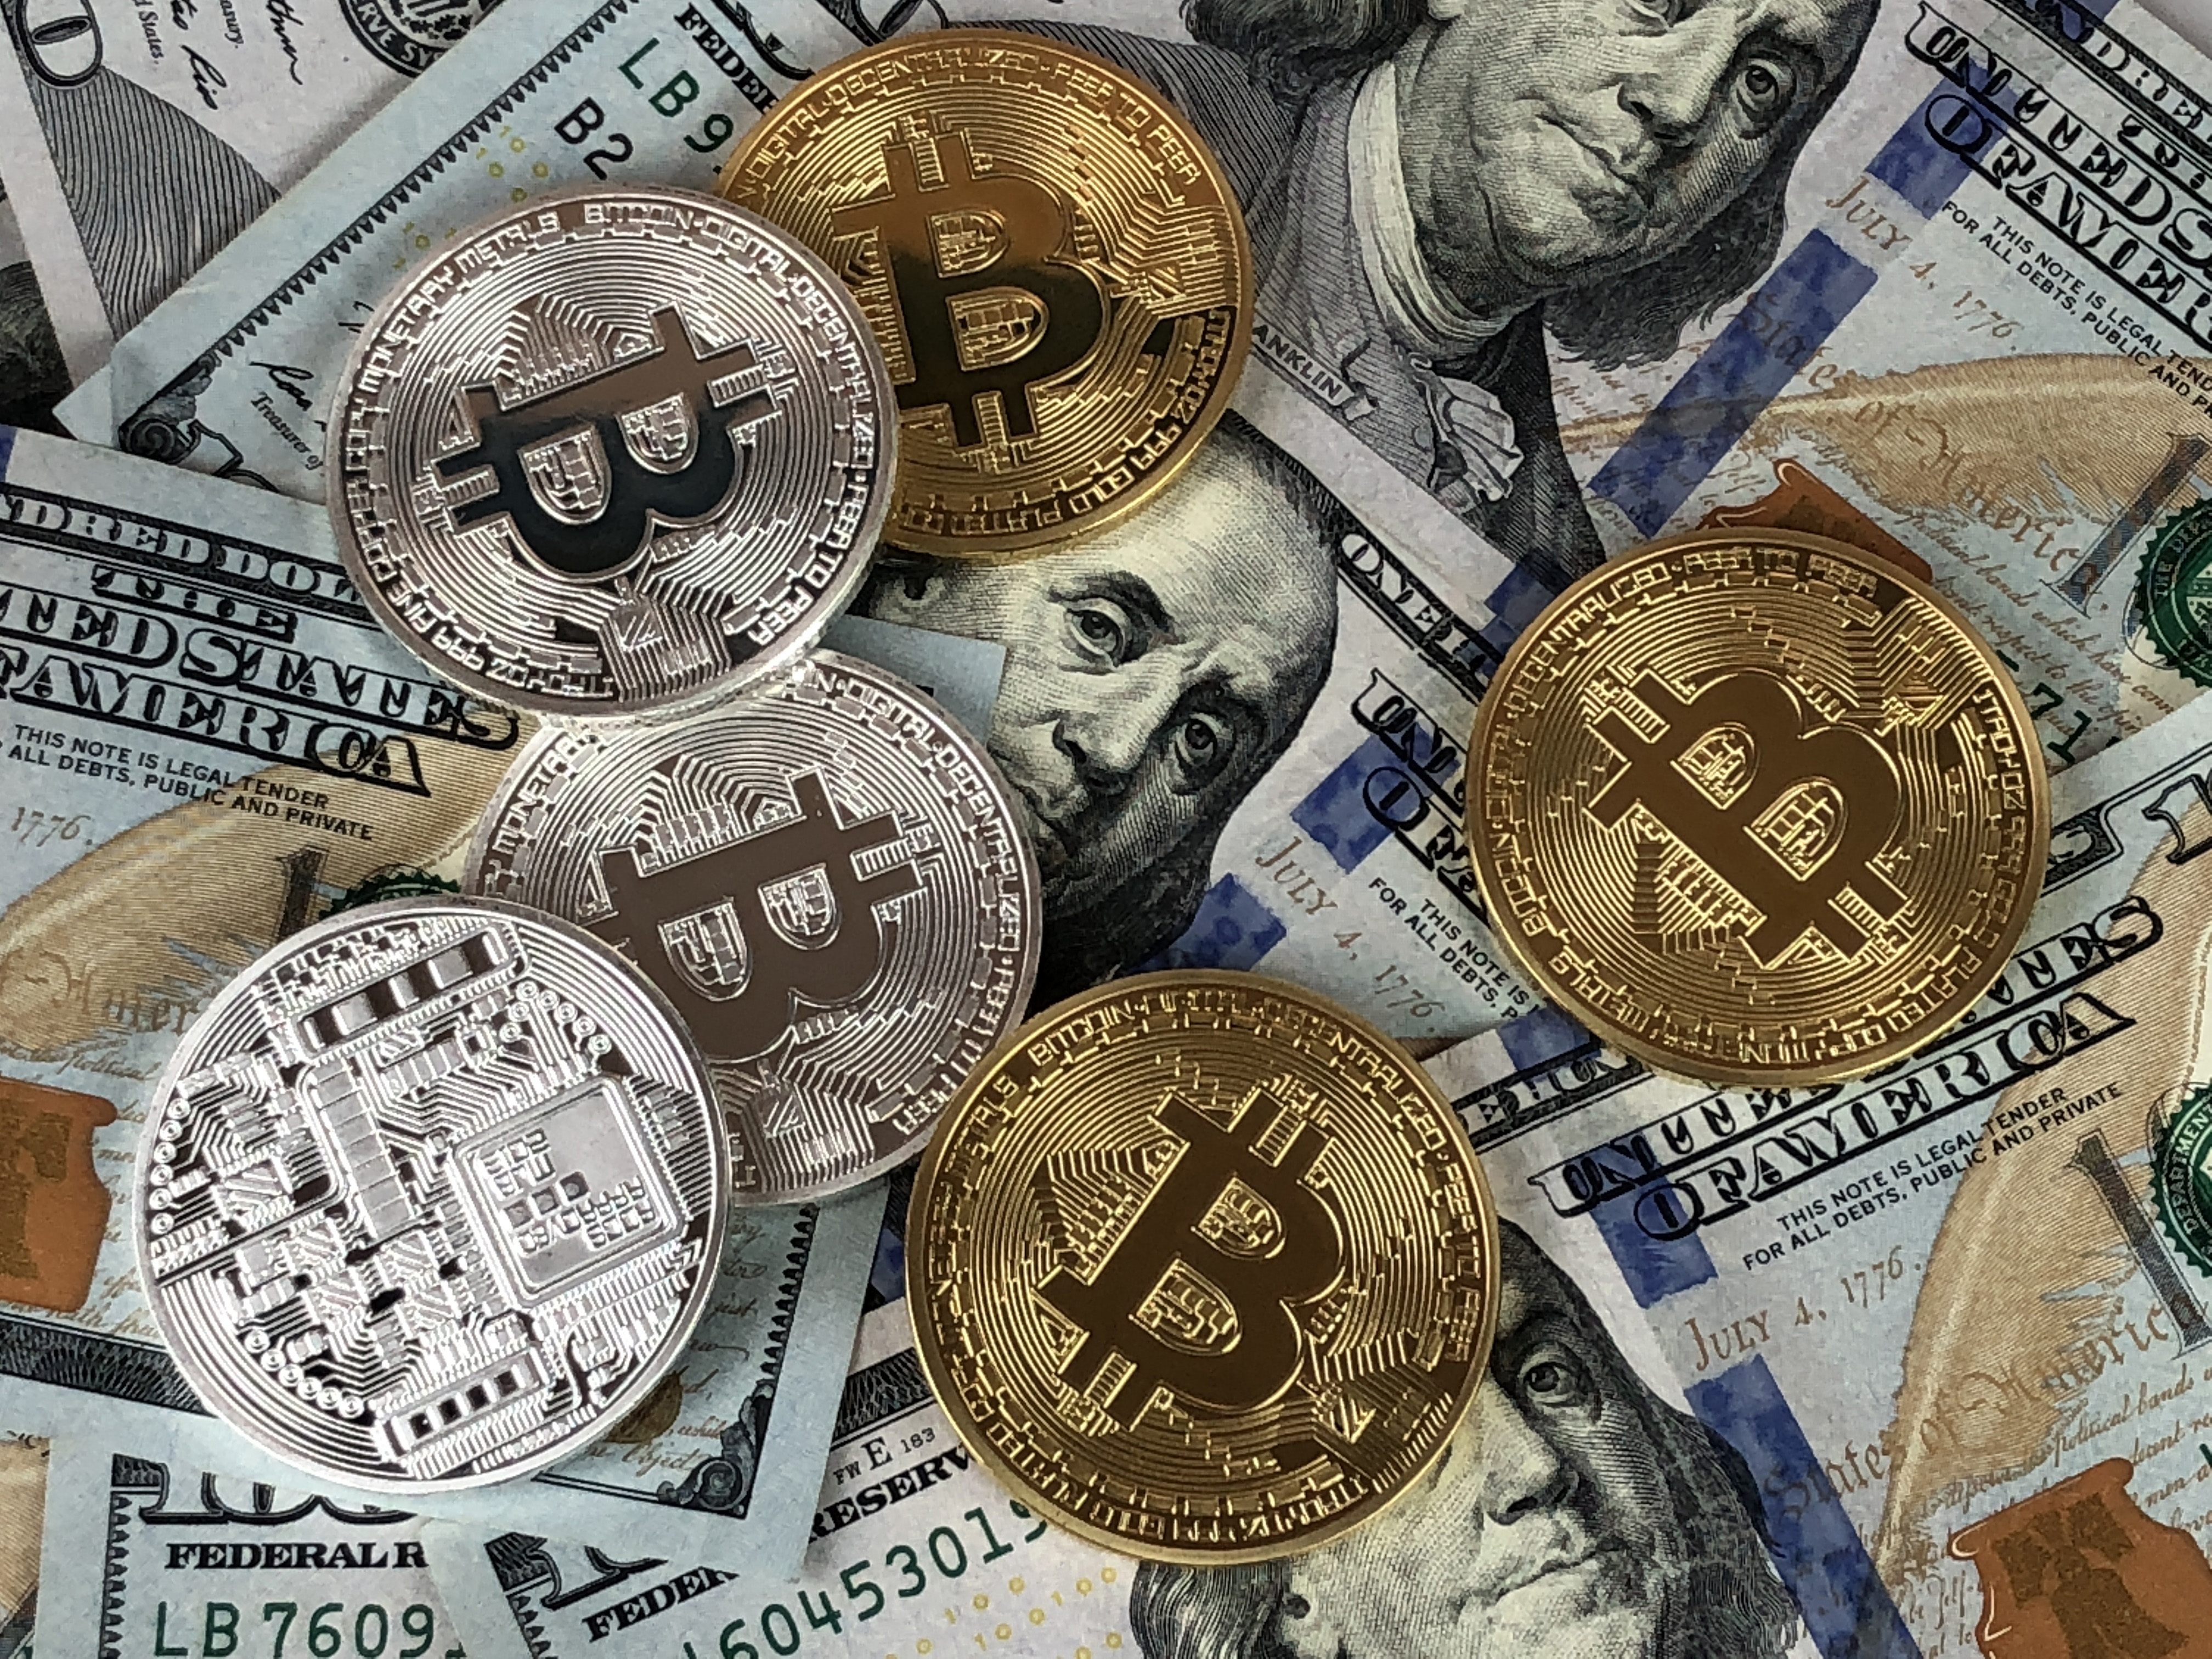 Tech Talk: Bitcoin and nonprofits